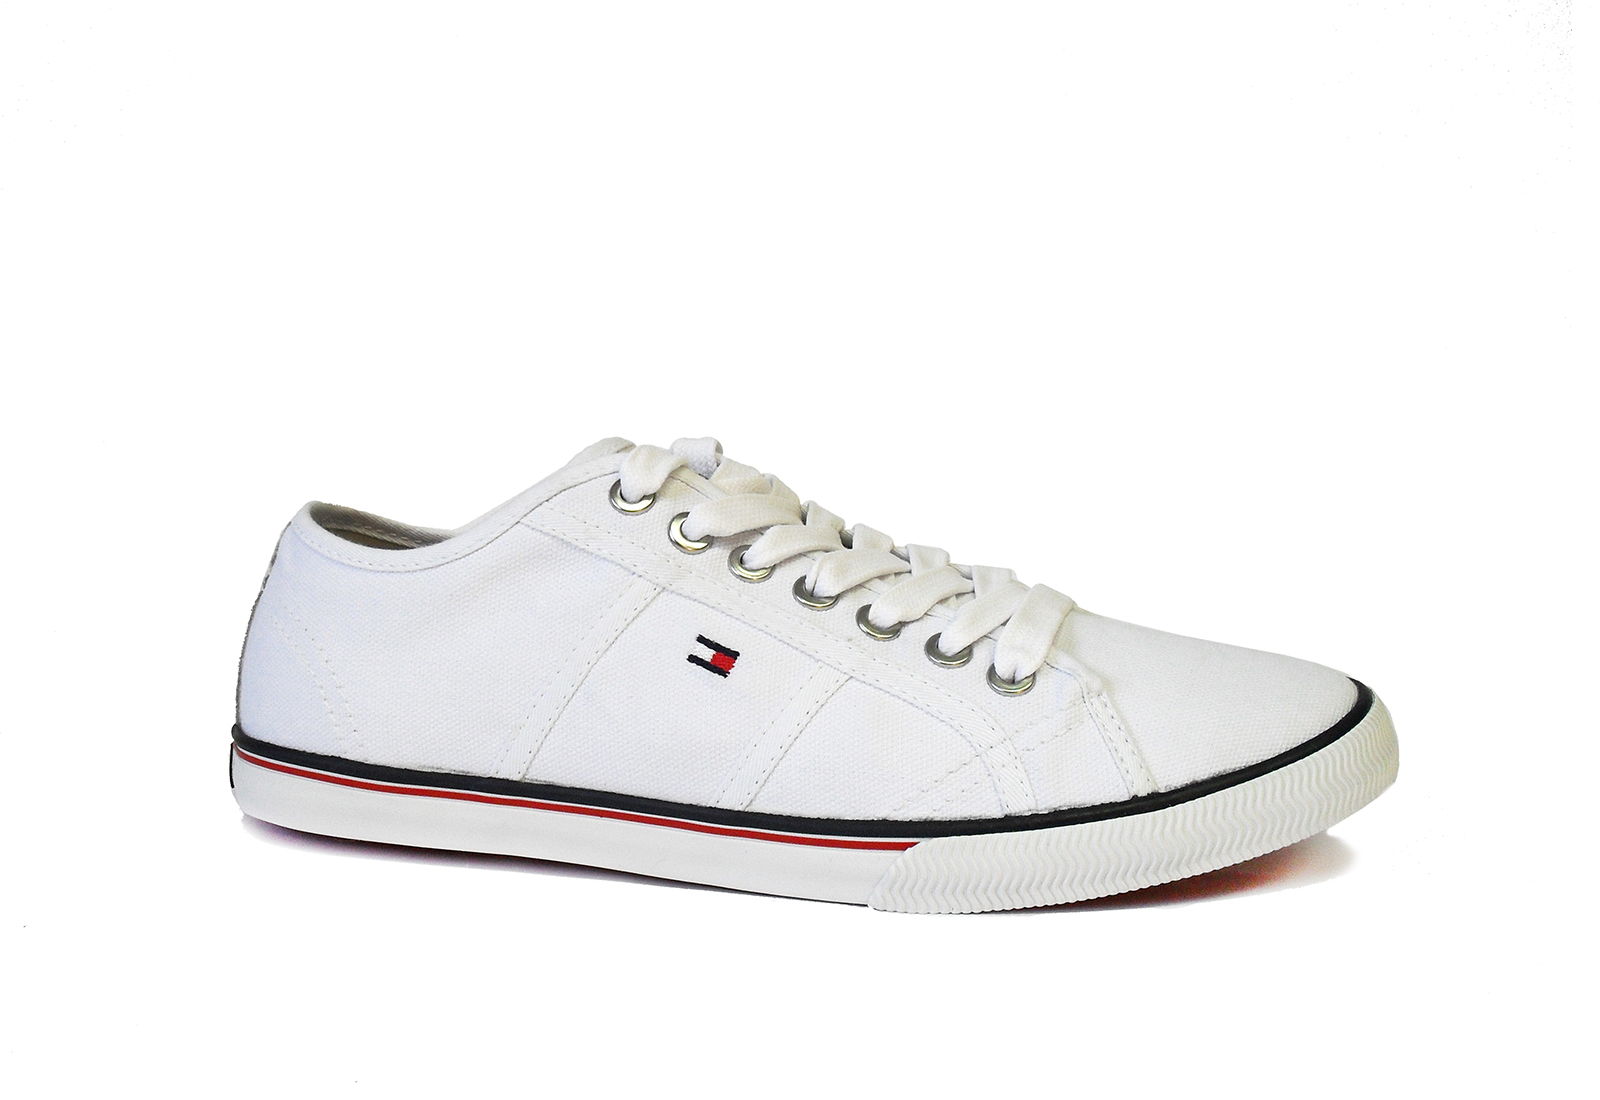 Tommy Hilfiger Tornacipő - Vantage 2a - 13S-5298-100 - Office Shoes ... 7f638108c7